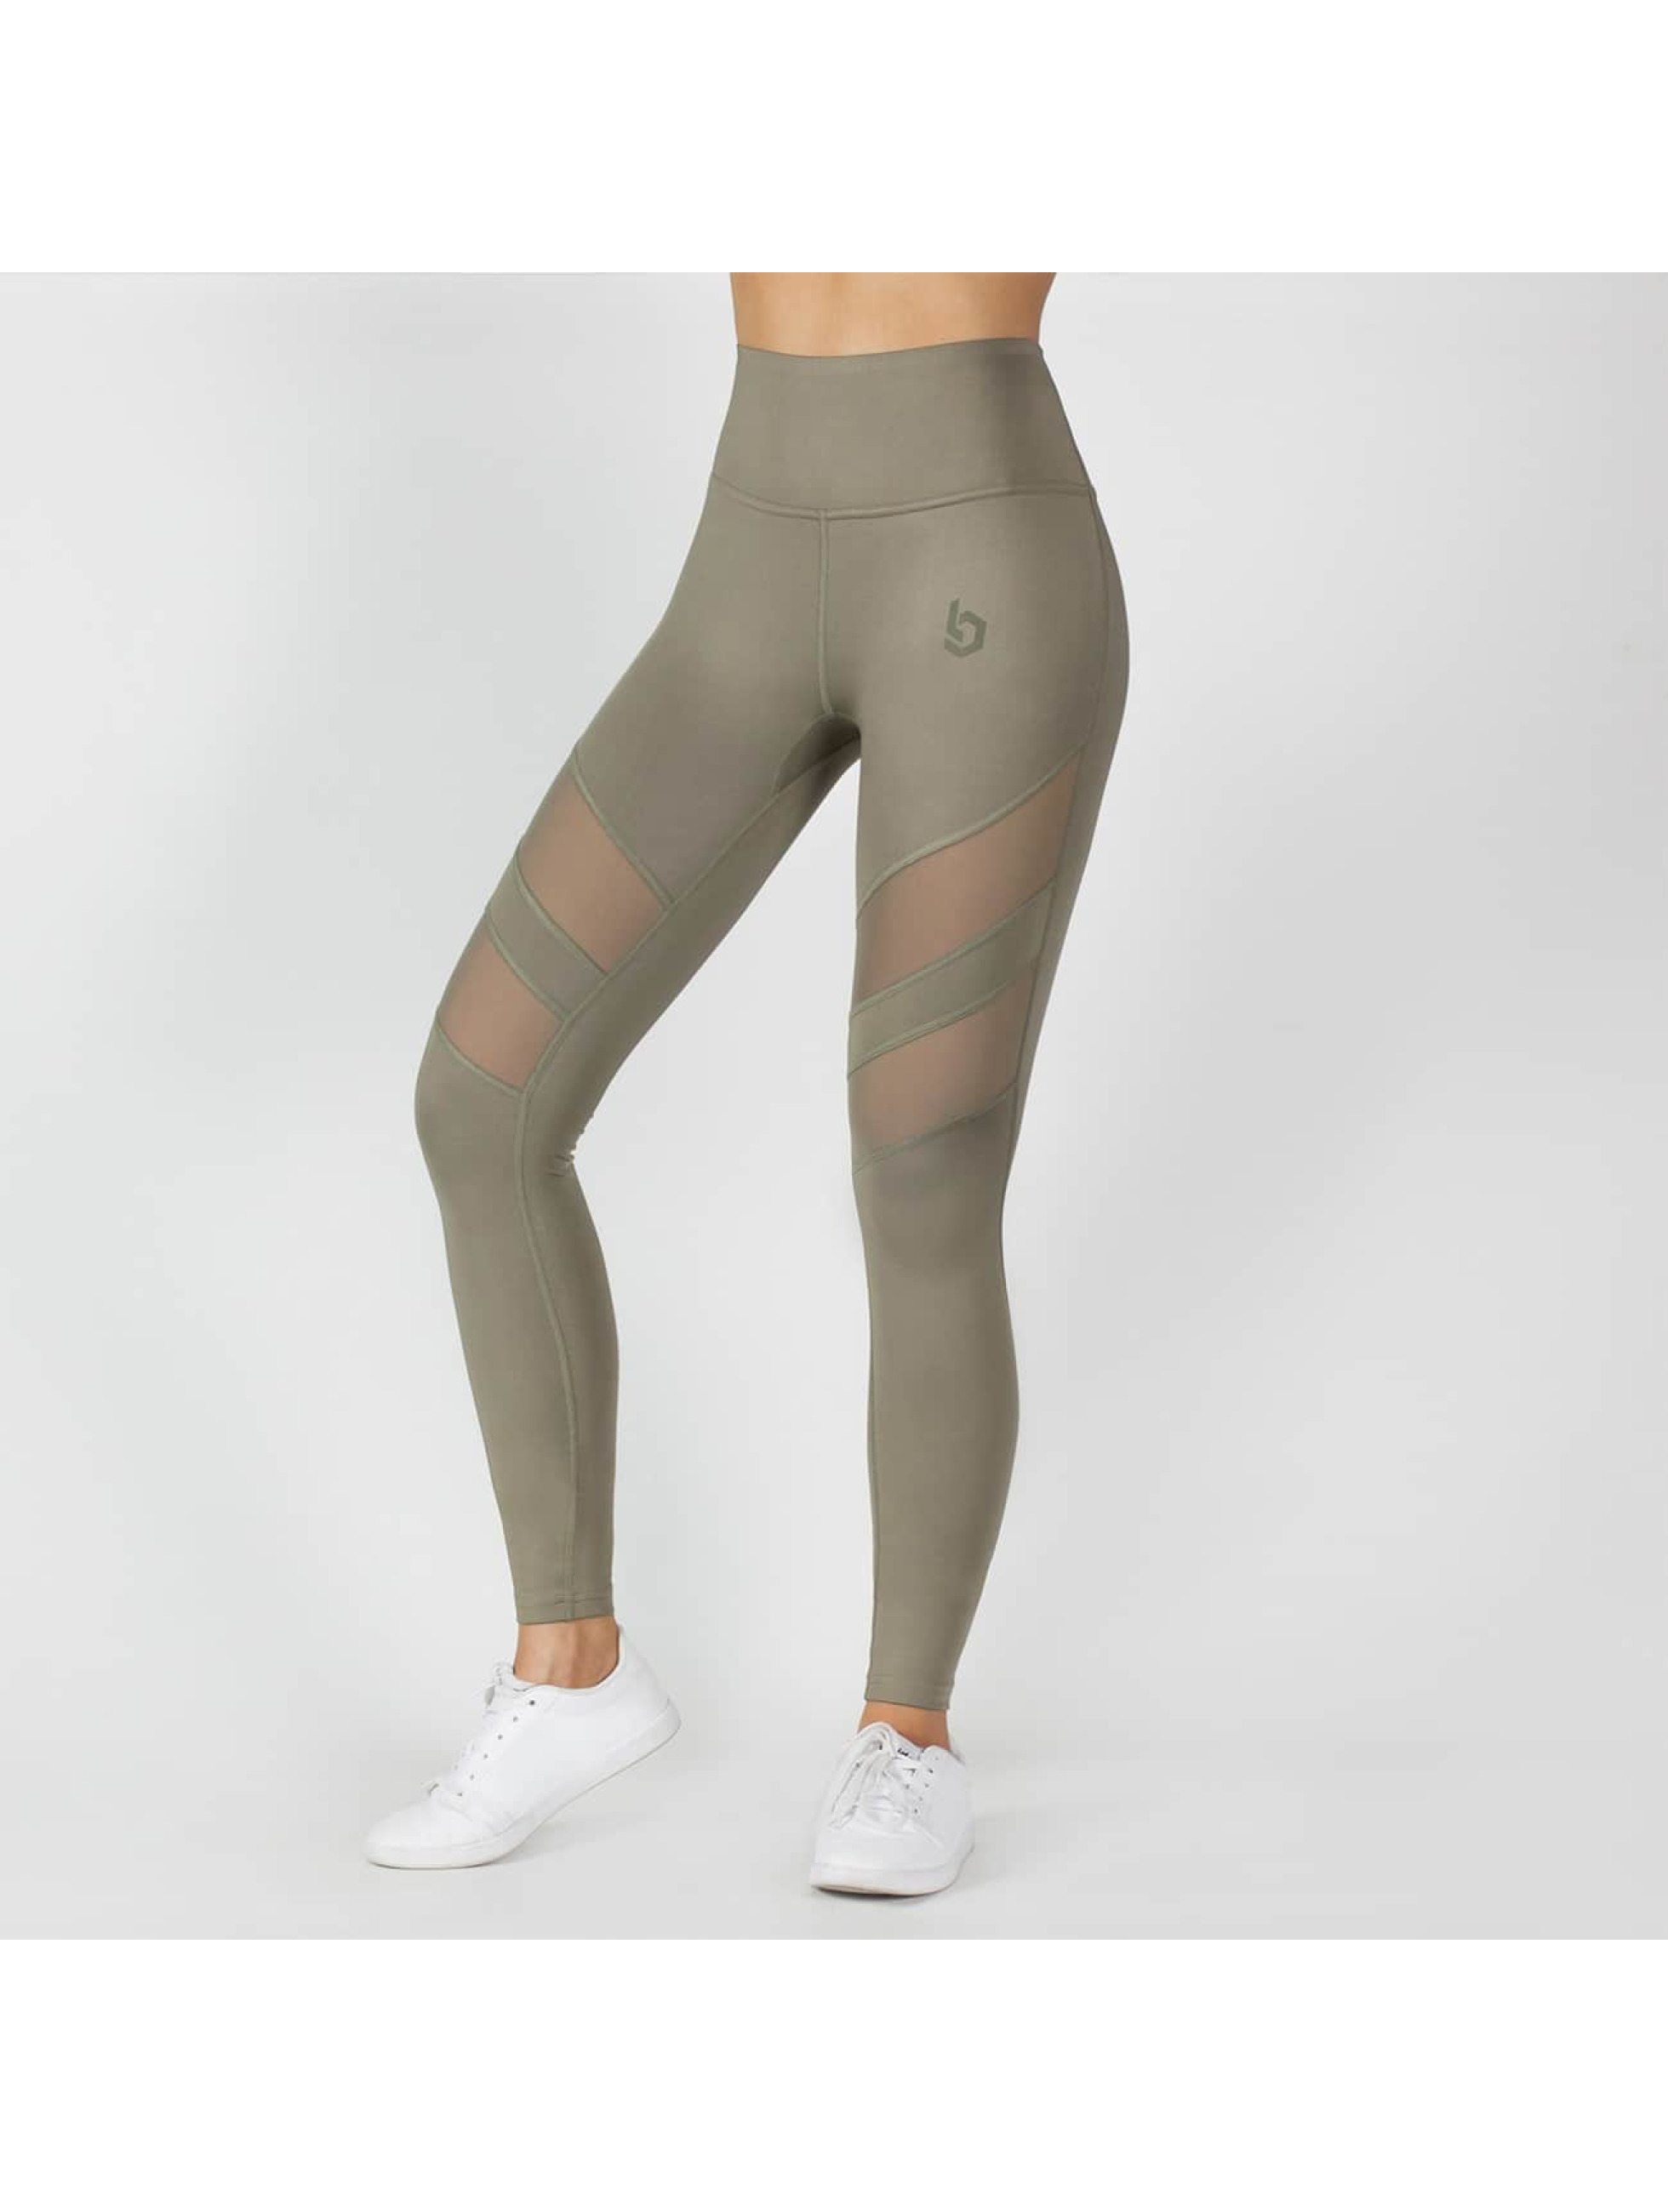 Beyond Limits Legging/Tregging Super High Waist Mesh caqui